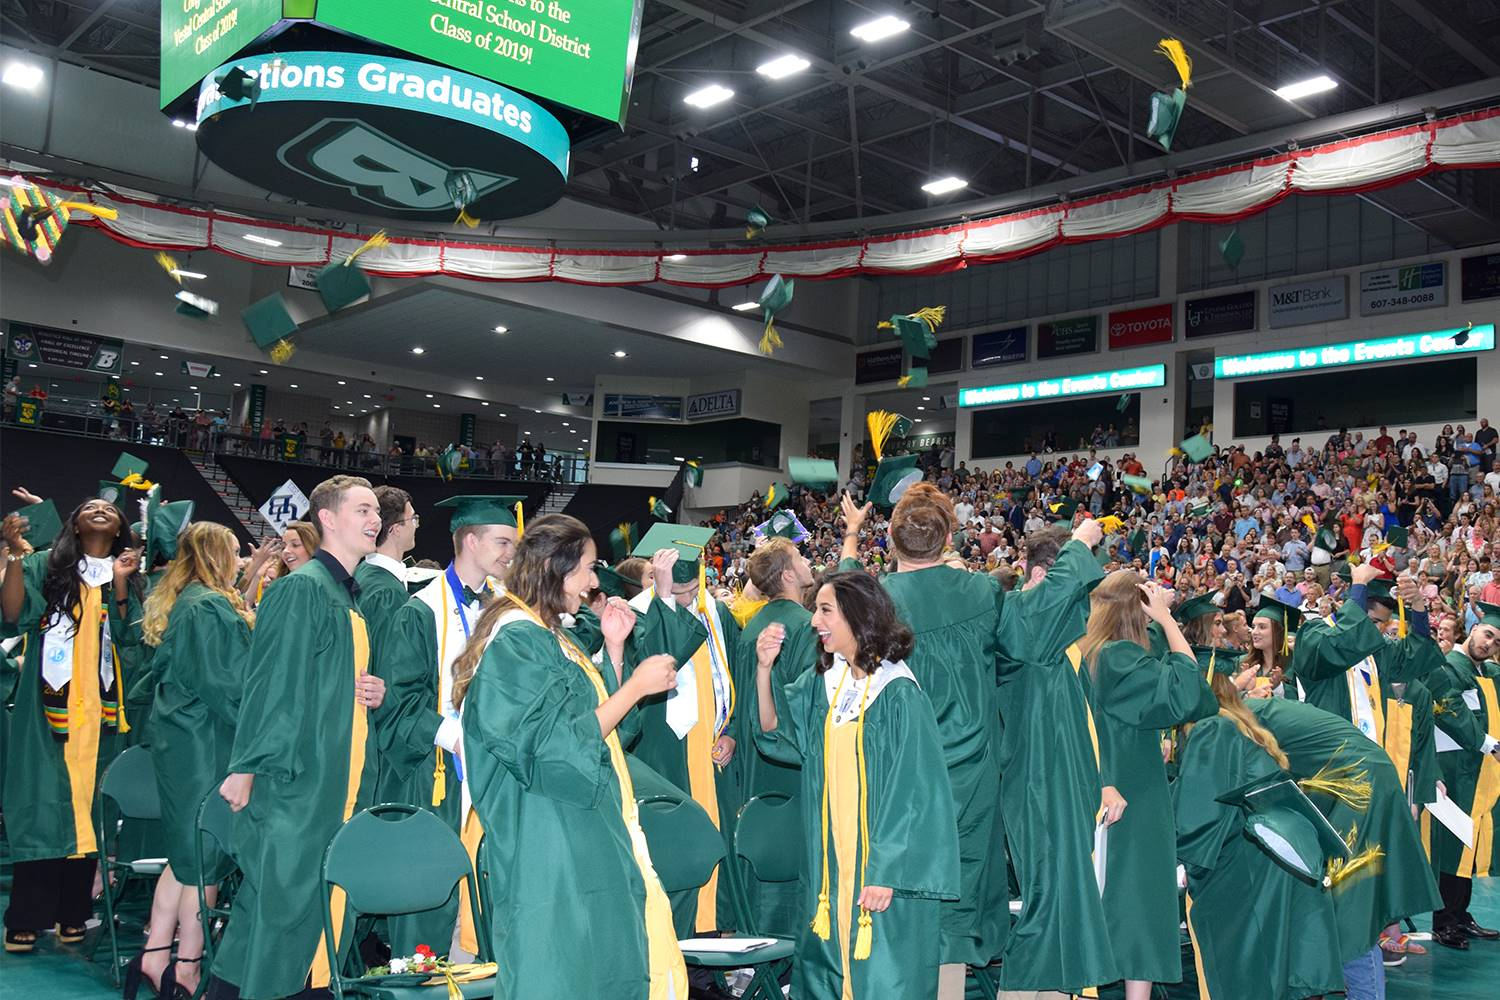 Vestal High School graduates toss their caps in the air after their graduation ceremony on June 29,